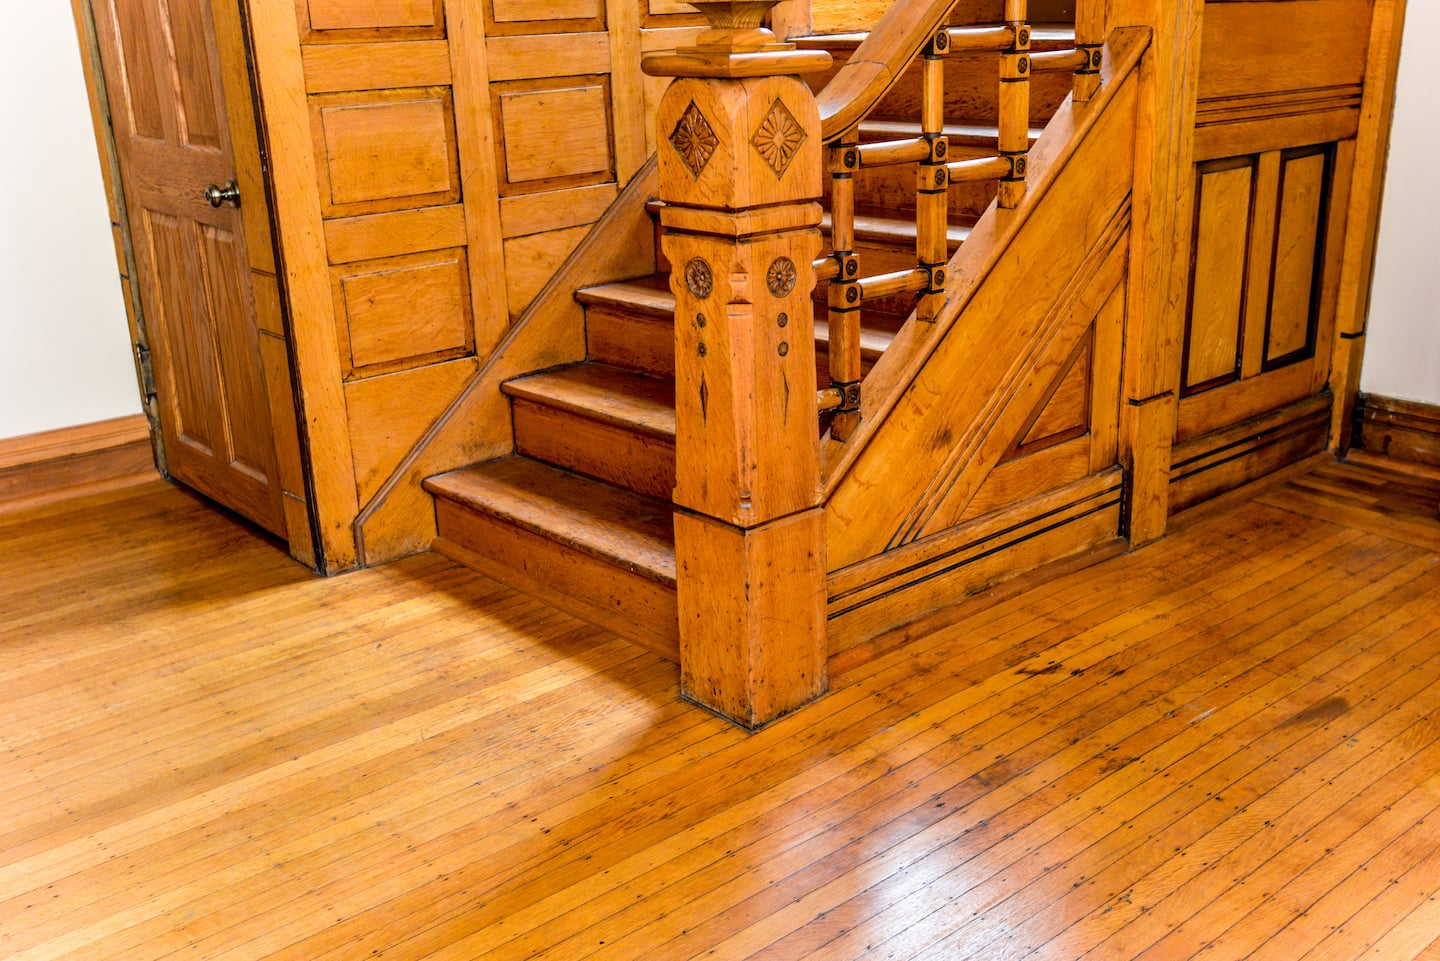 Hardest Hardwood Flooring bamboo hardwood flooring Refinishing Hardwood Flooring